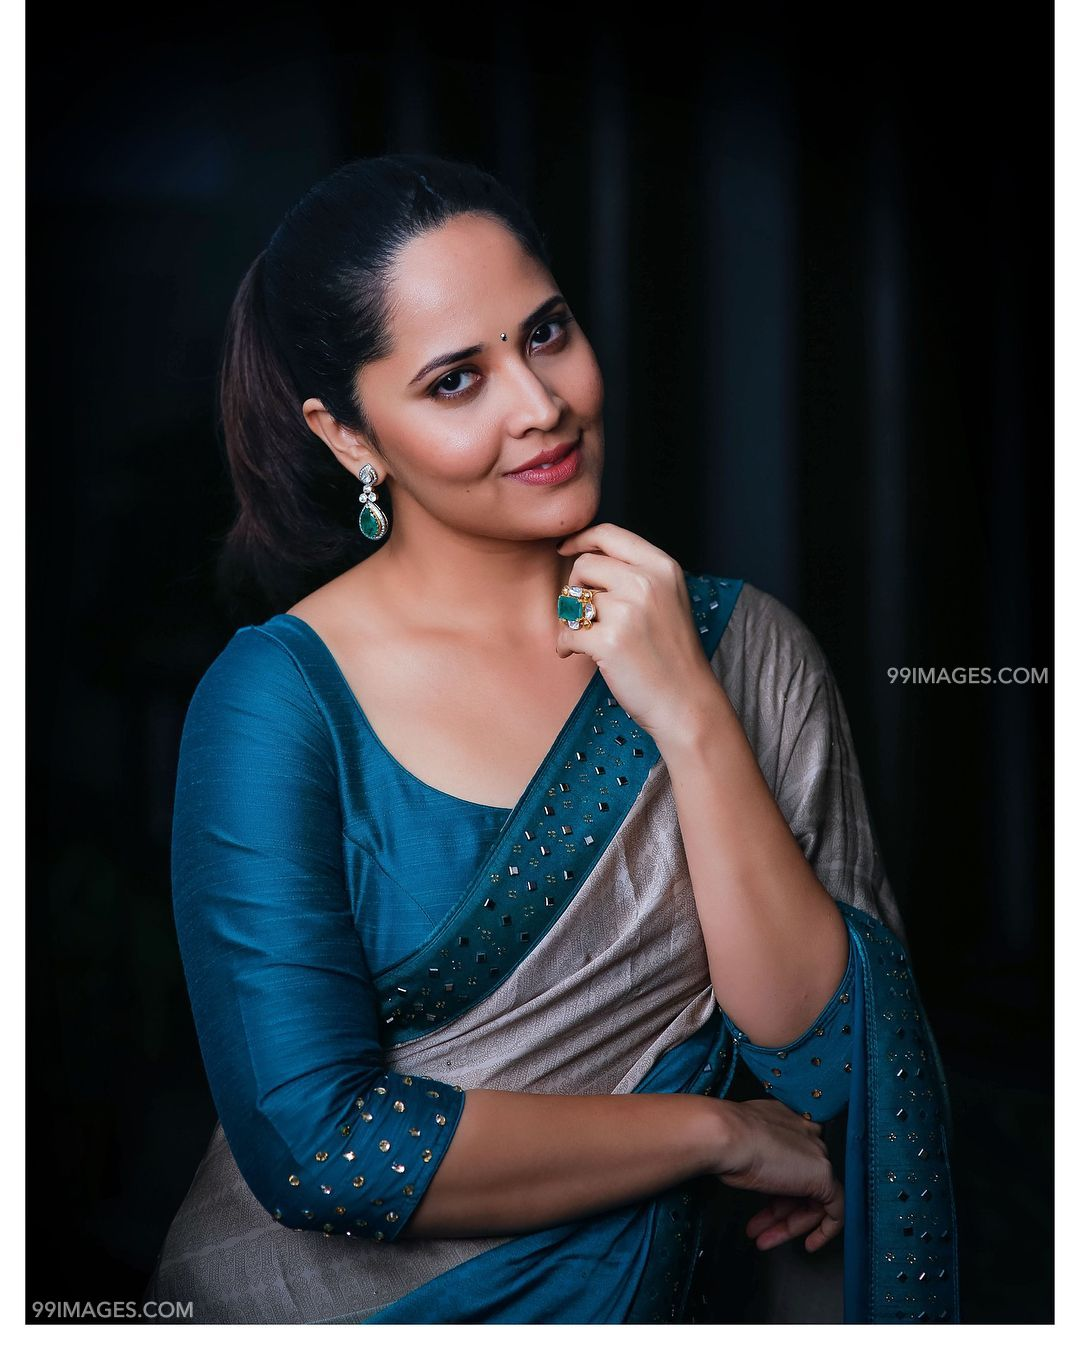 Anasuya Bharadwaj Beautiful HD Photos & Mobile Wallpapers HD (Android/iPhone) (1080p) (31568) - Anasuya Bharadwaj